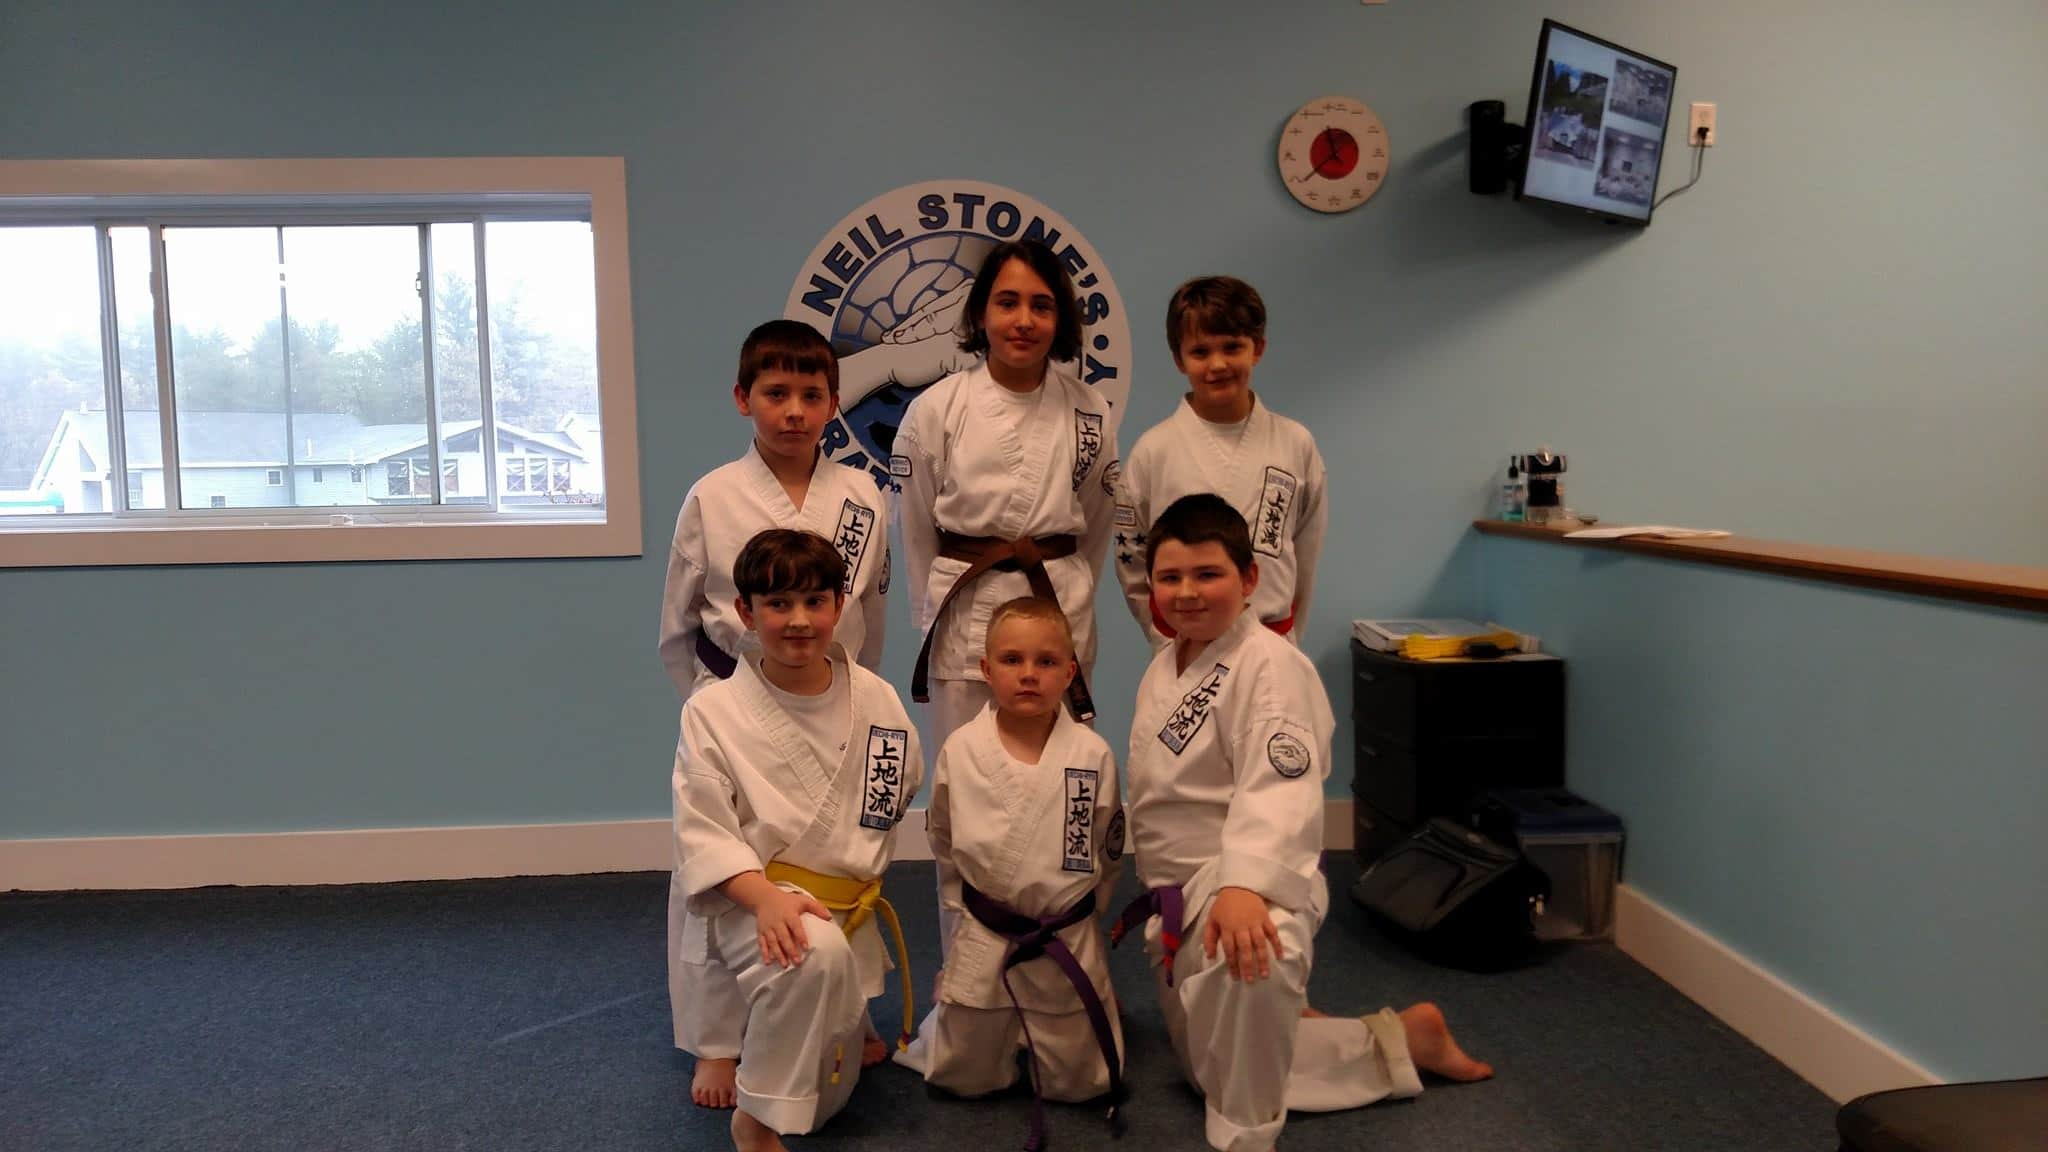 Group of Kids at Neil Stone's Karate Academy